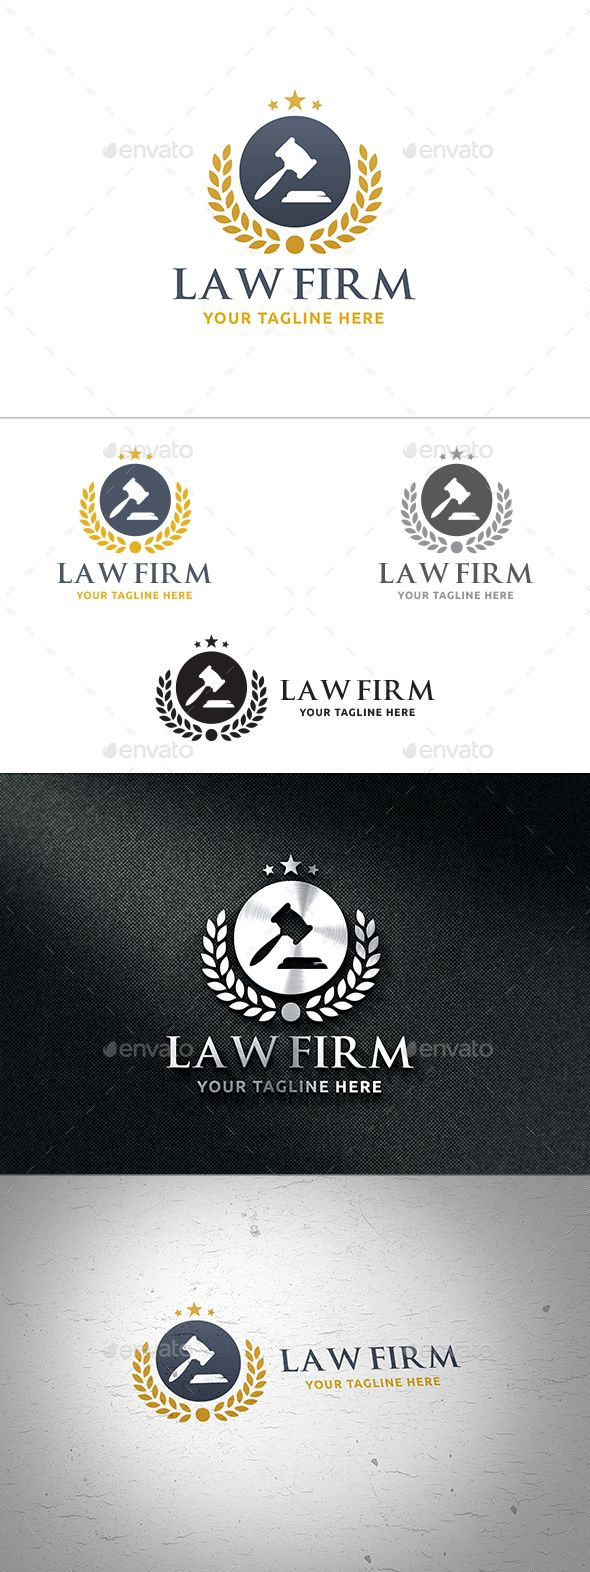 Law Firm Logo Design Template Vector logotype Download